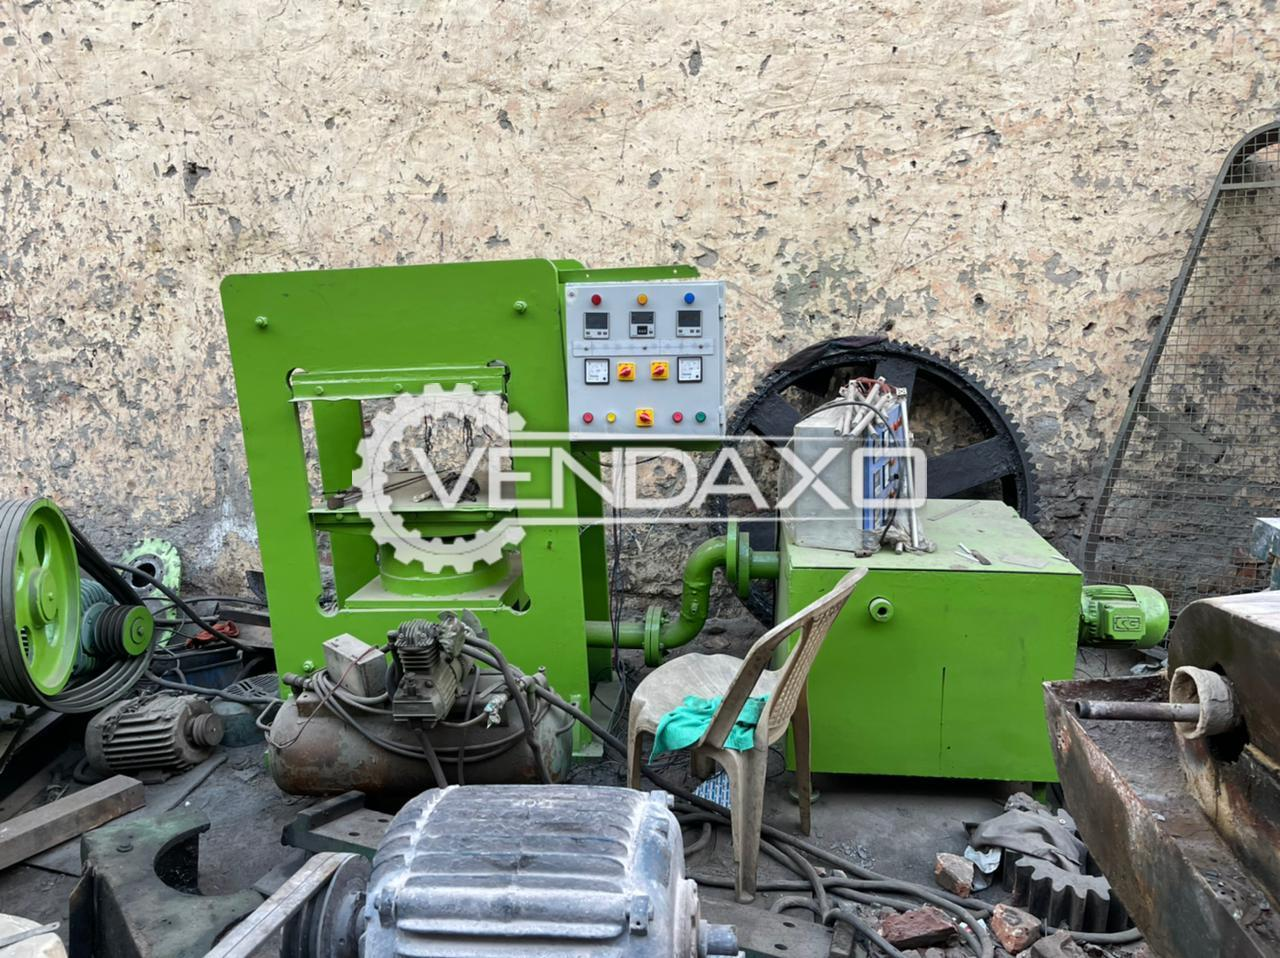 For Sale Used Rubber Kneader Machine - 25 Liter